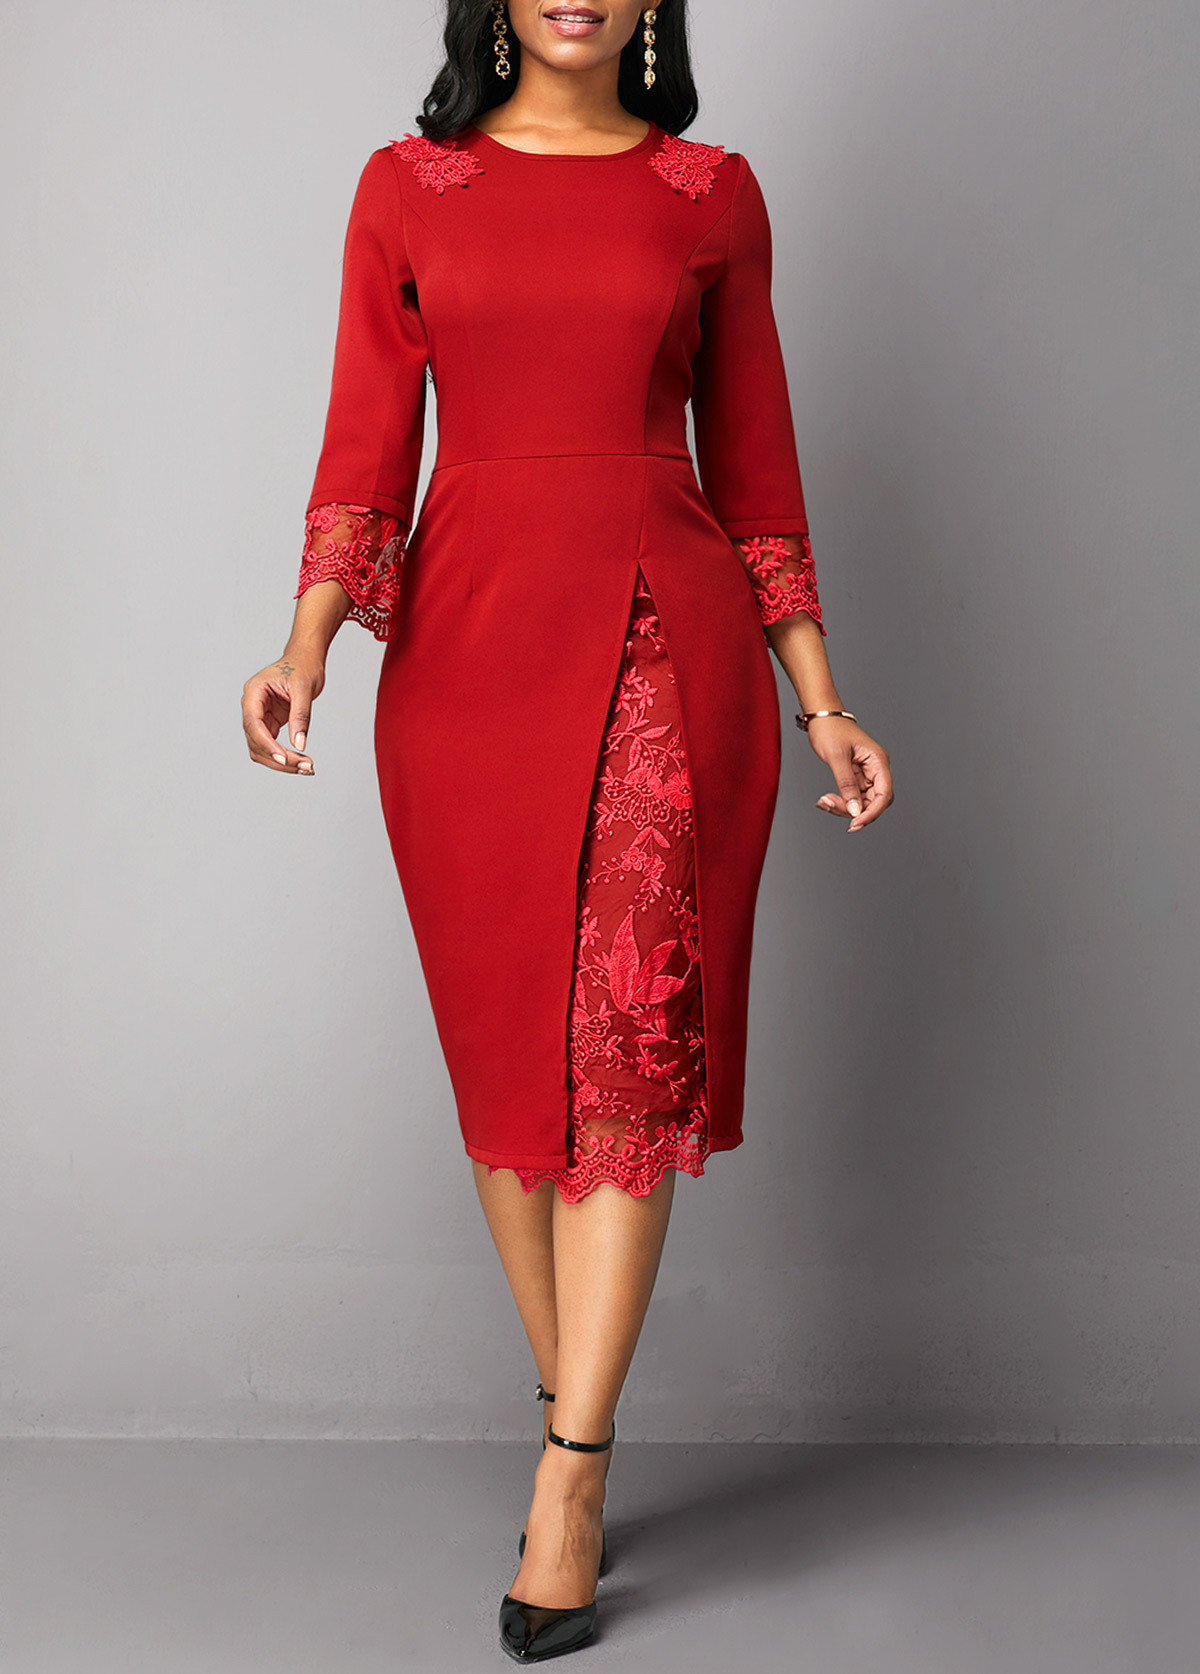 Autumn Women 2019 New Red Solid Color S-5xl Large Size Elegant Lace Stitching Slim Dress Plus Size Office Work Dress Vestidos